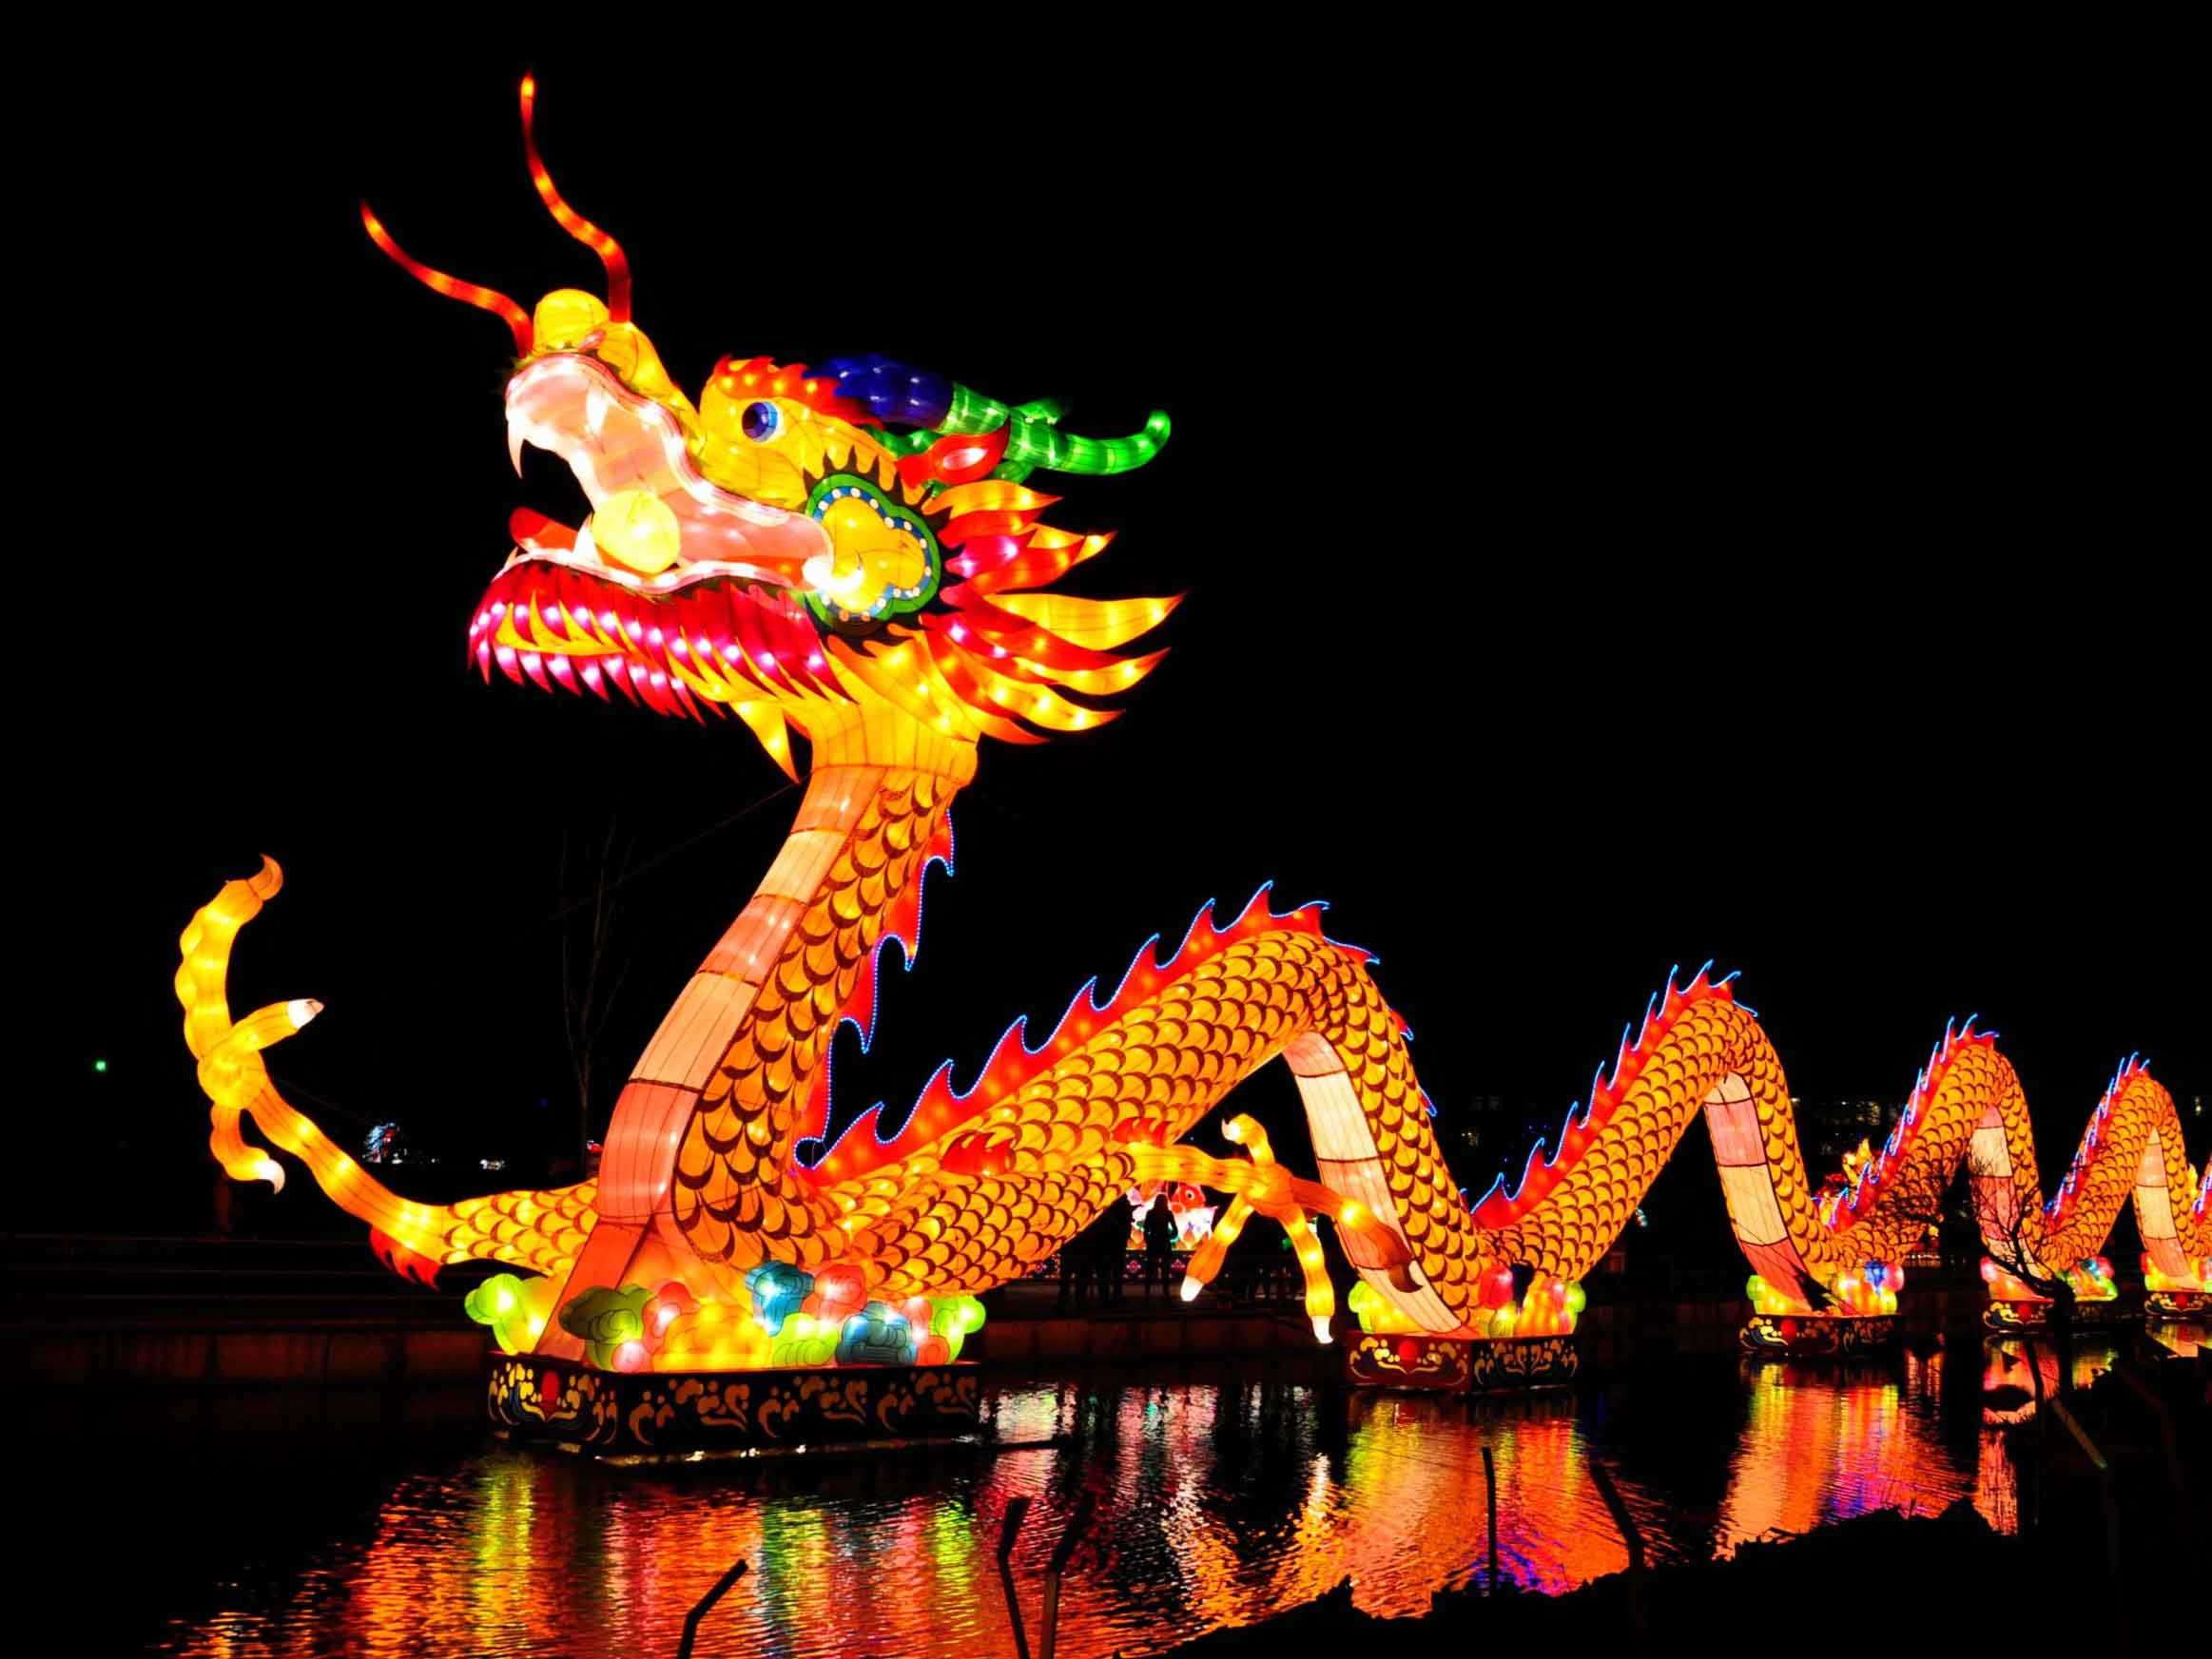 essay on chinese new year celebration A timeline to show you top things chinese people do to celebrate chinese new year, including preparations, decorations, and new year activities.